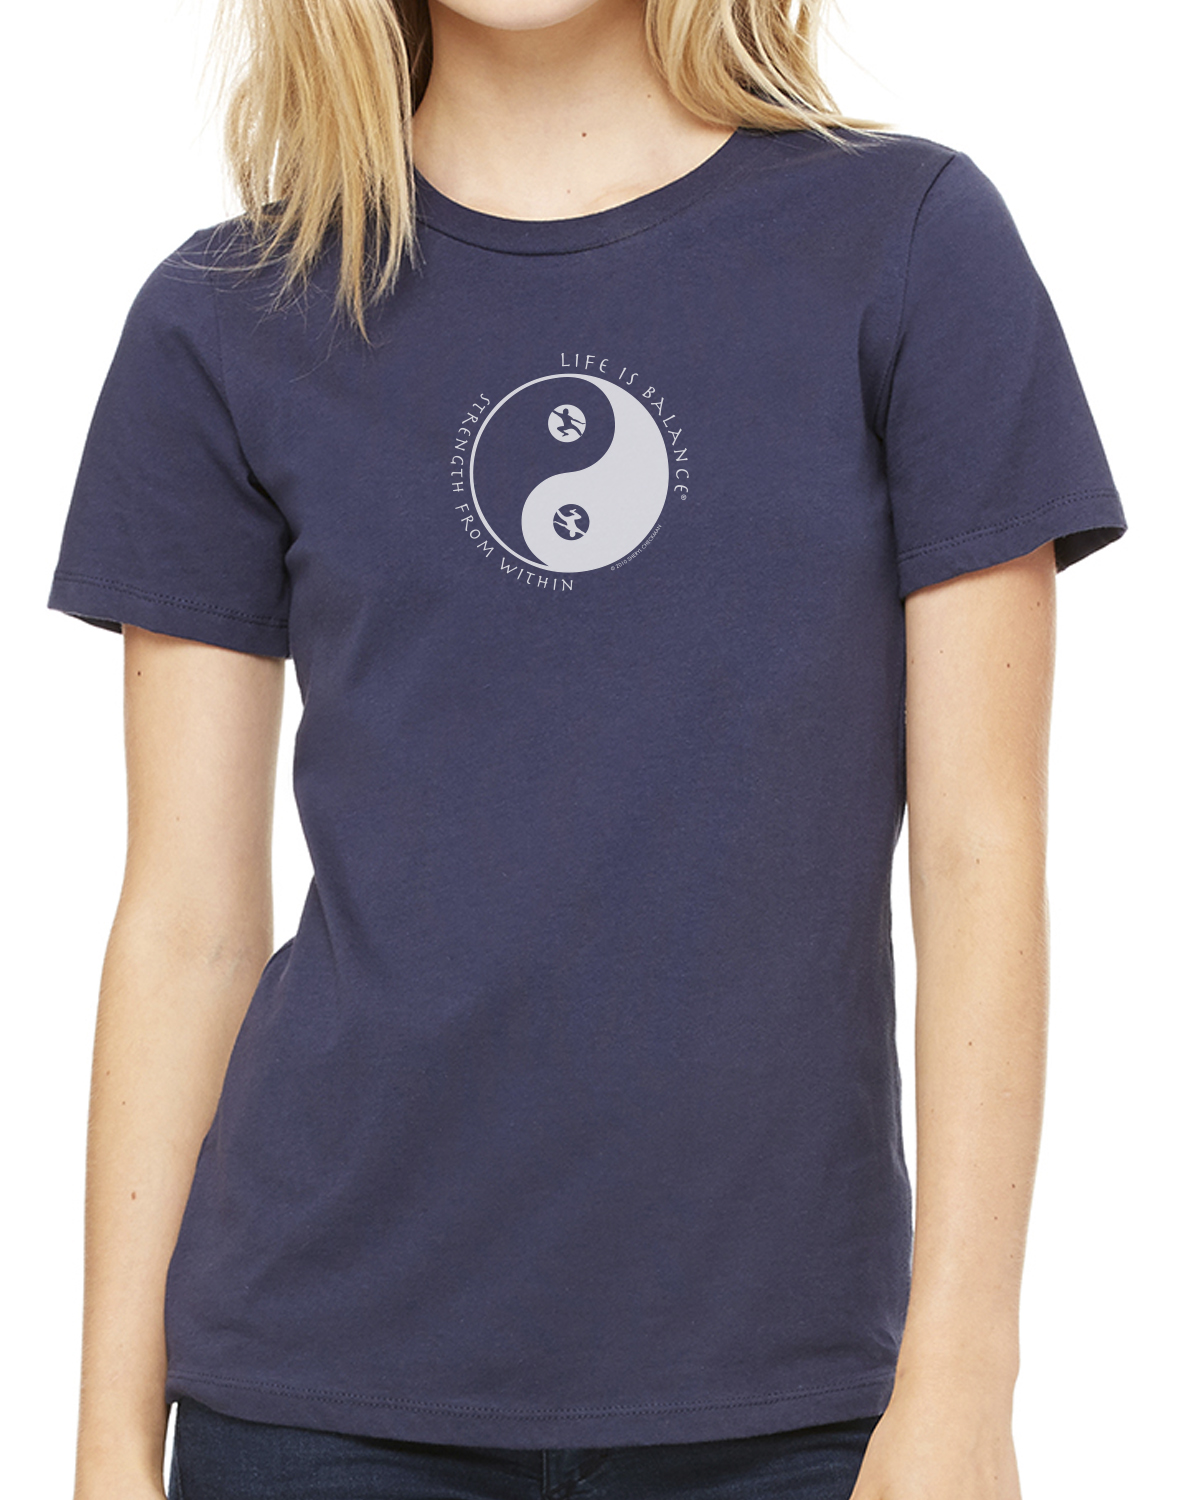 Women's short sleeve Tai Chi T-shirt (navy)